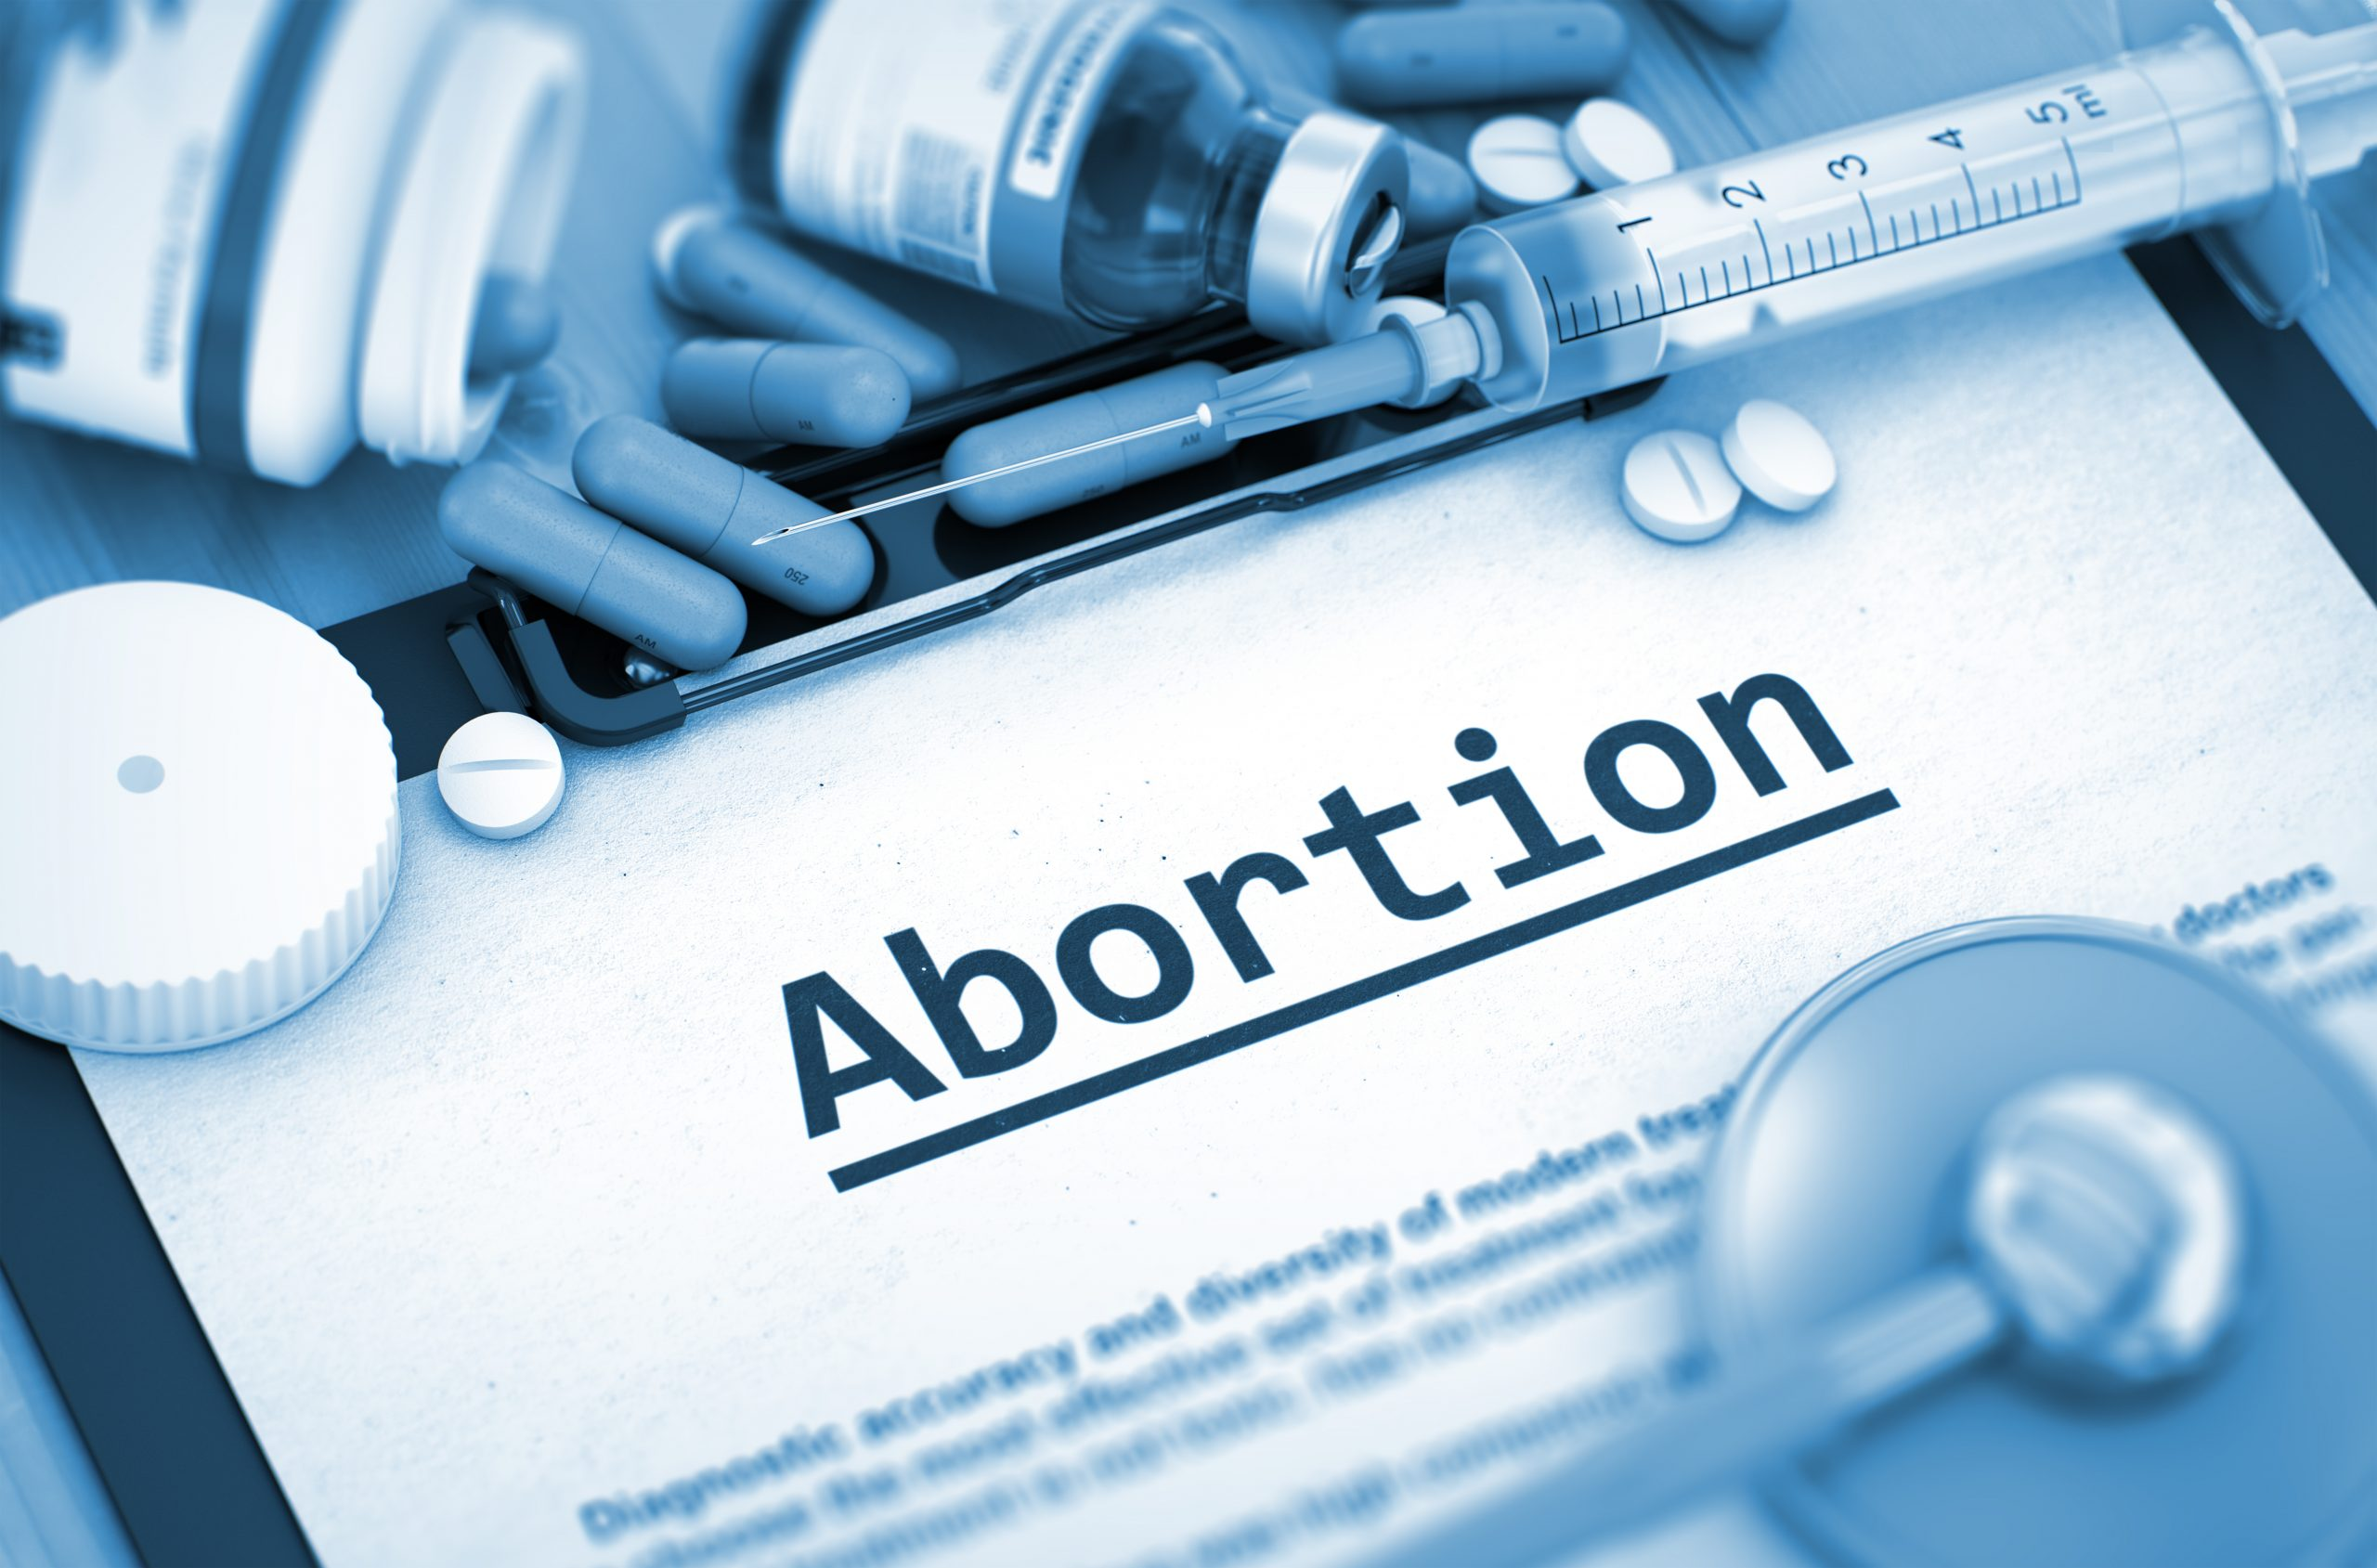 Challenging Use of Your Taxes to Fund Abortion